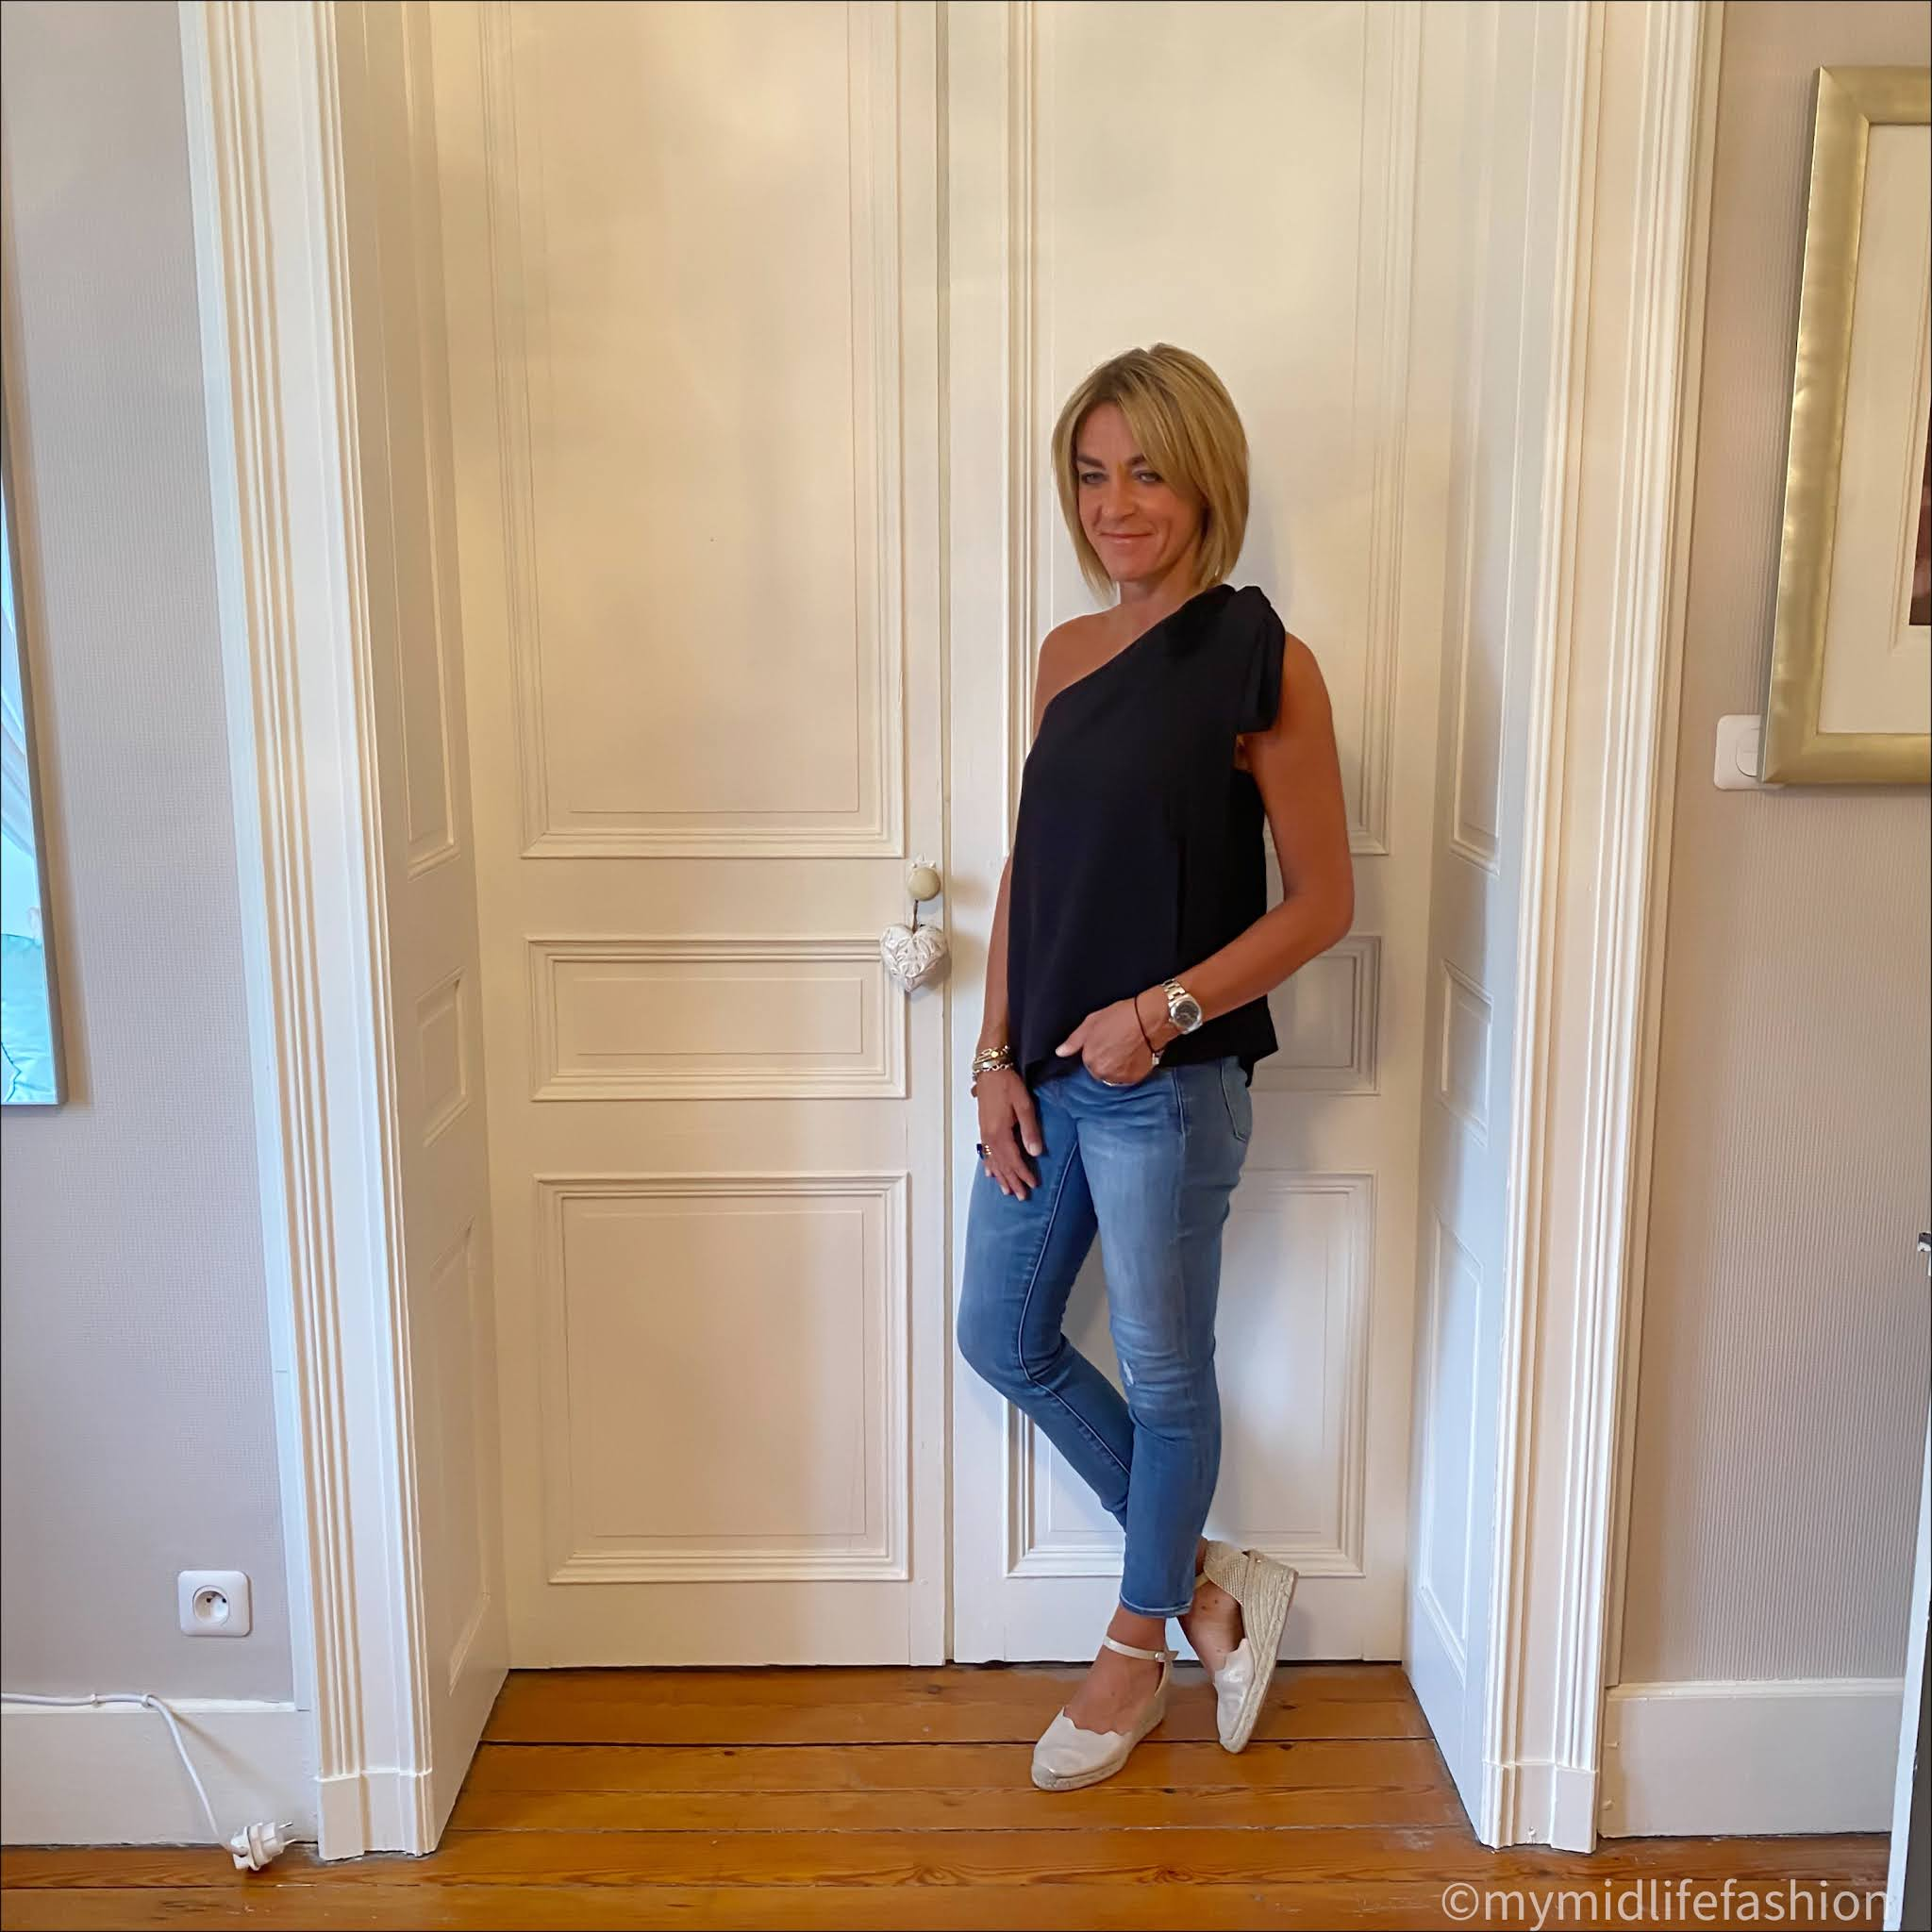 my midlife fashion, marks and Spencer one shoulder chiffon top, j crew 8 inch toothpick skinny jeans, Carl Scarpa Brittany metallic wedge sandals